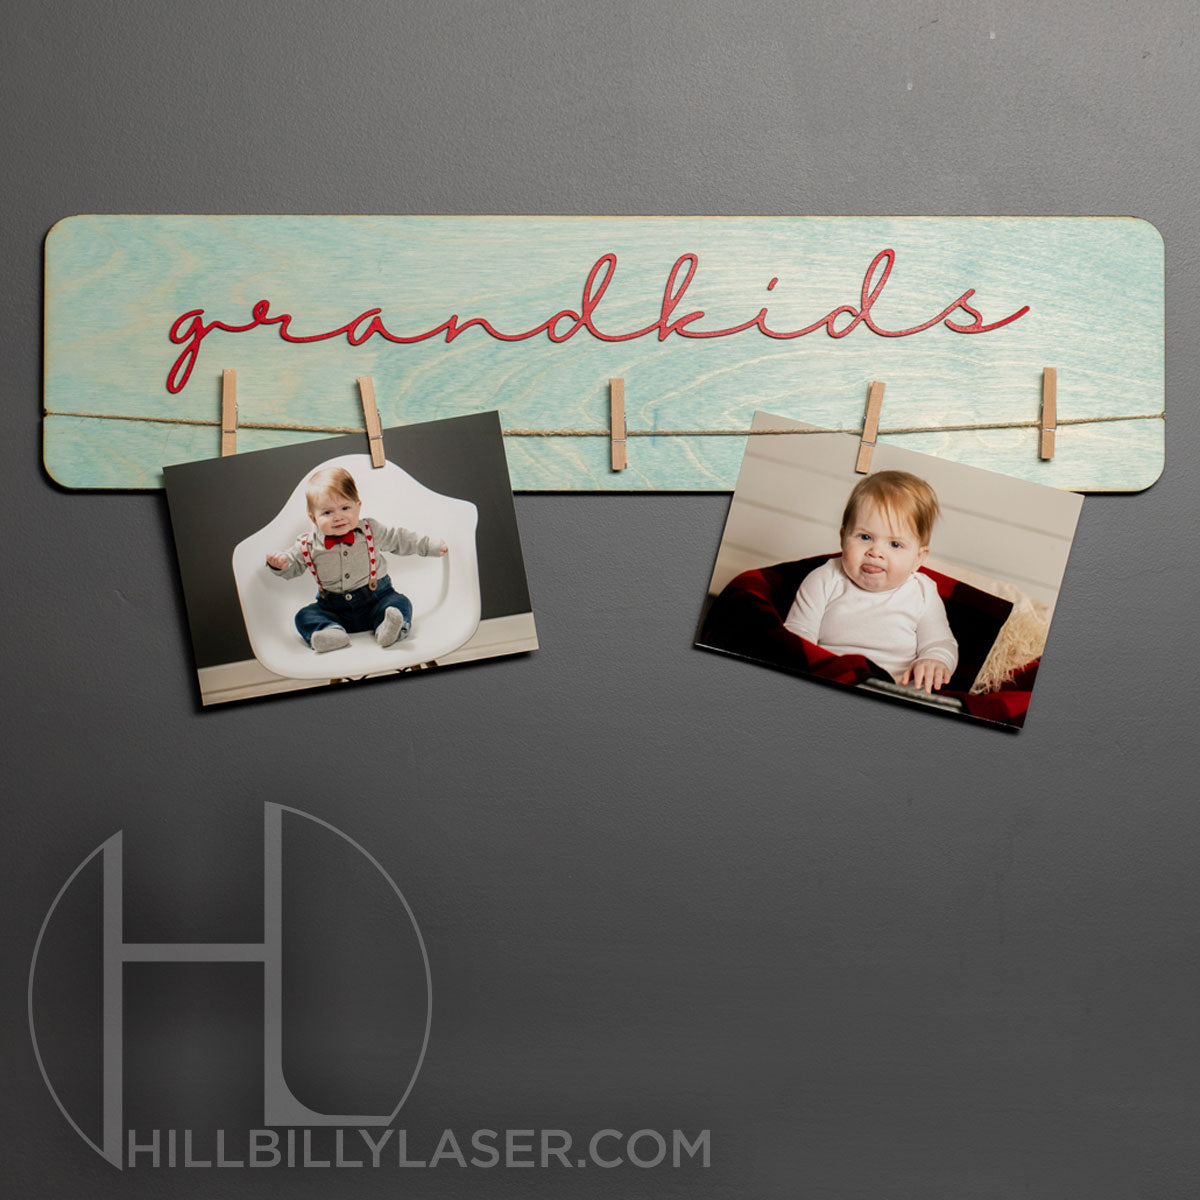 Grandchildren Photo Hanger - Hillbilly Laser